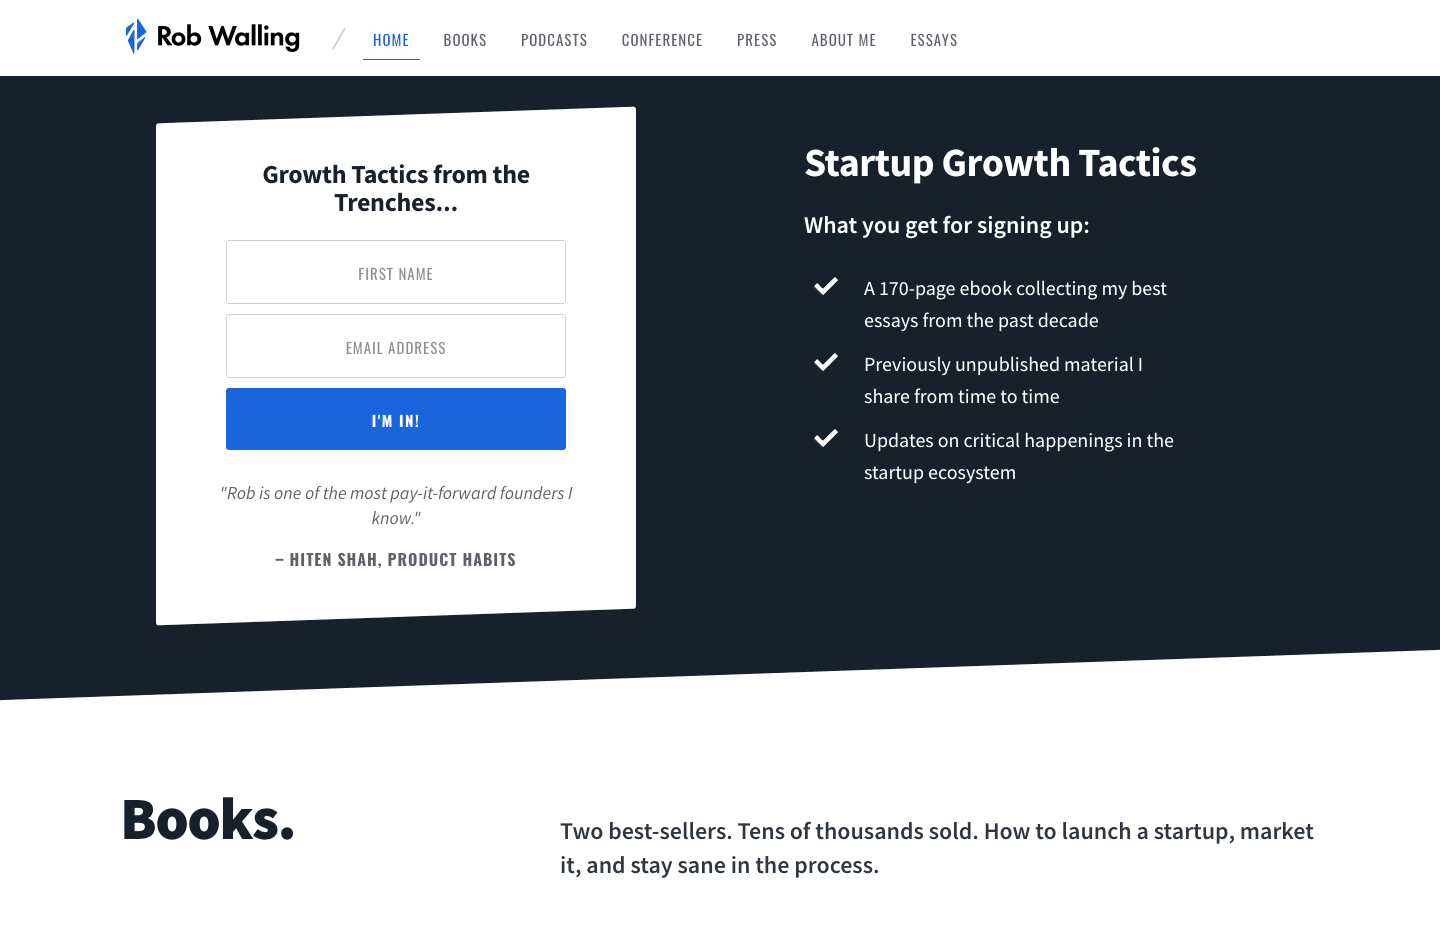 Startup Growth Tactics homepage